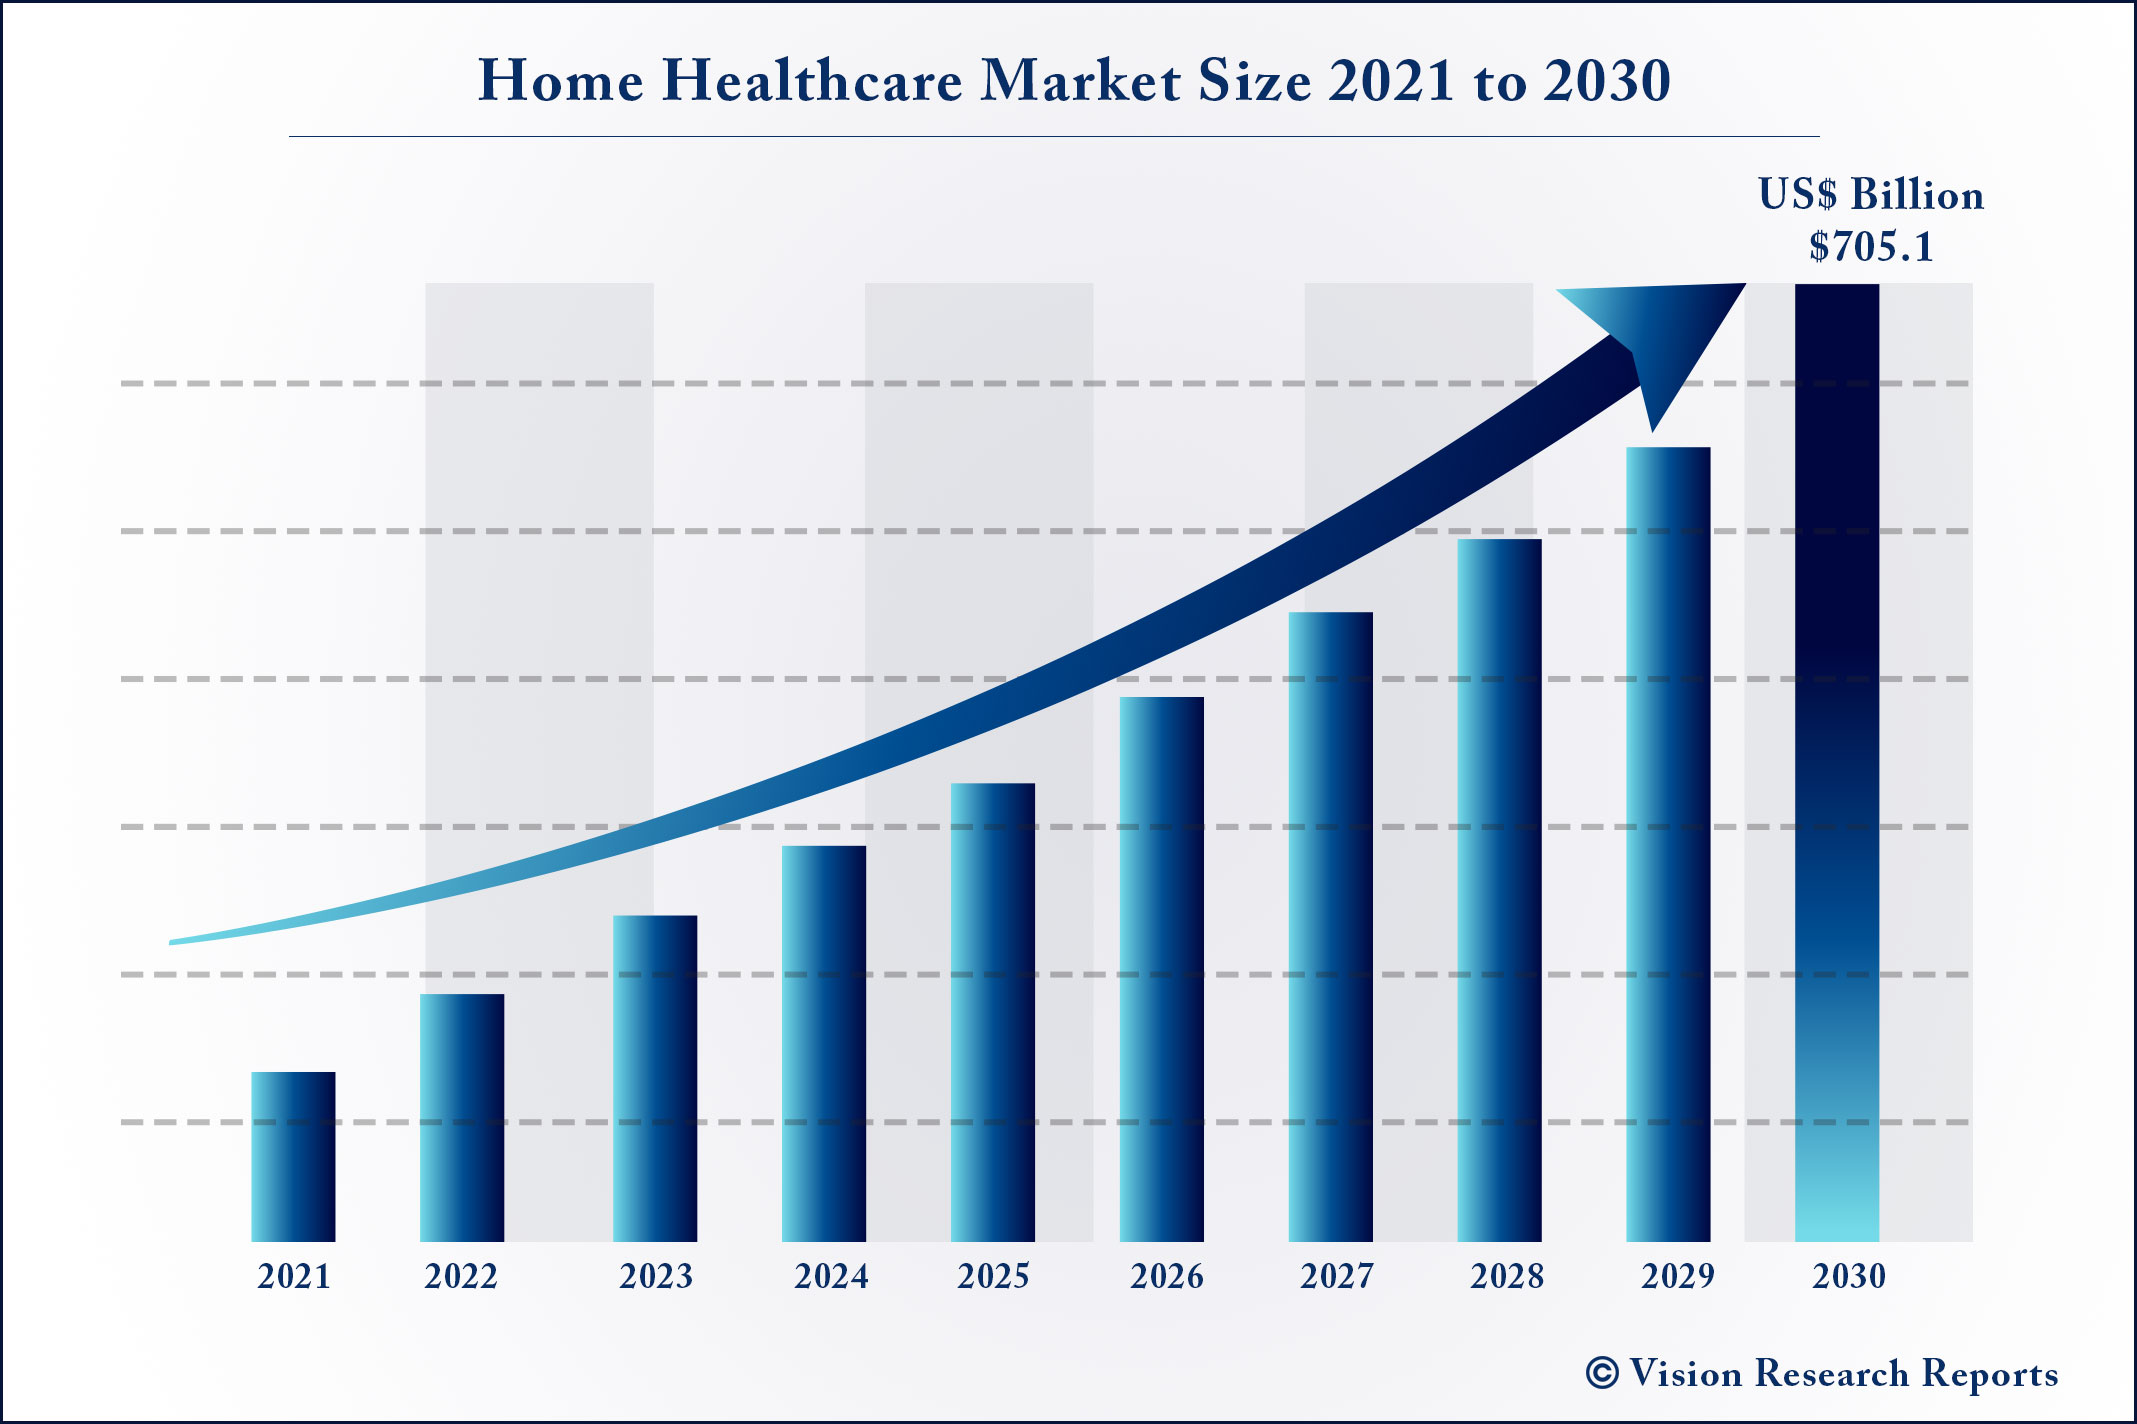 Home Healthcare Market Size 2021 to 2030